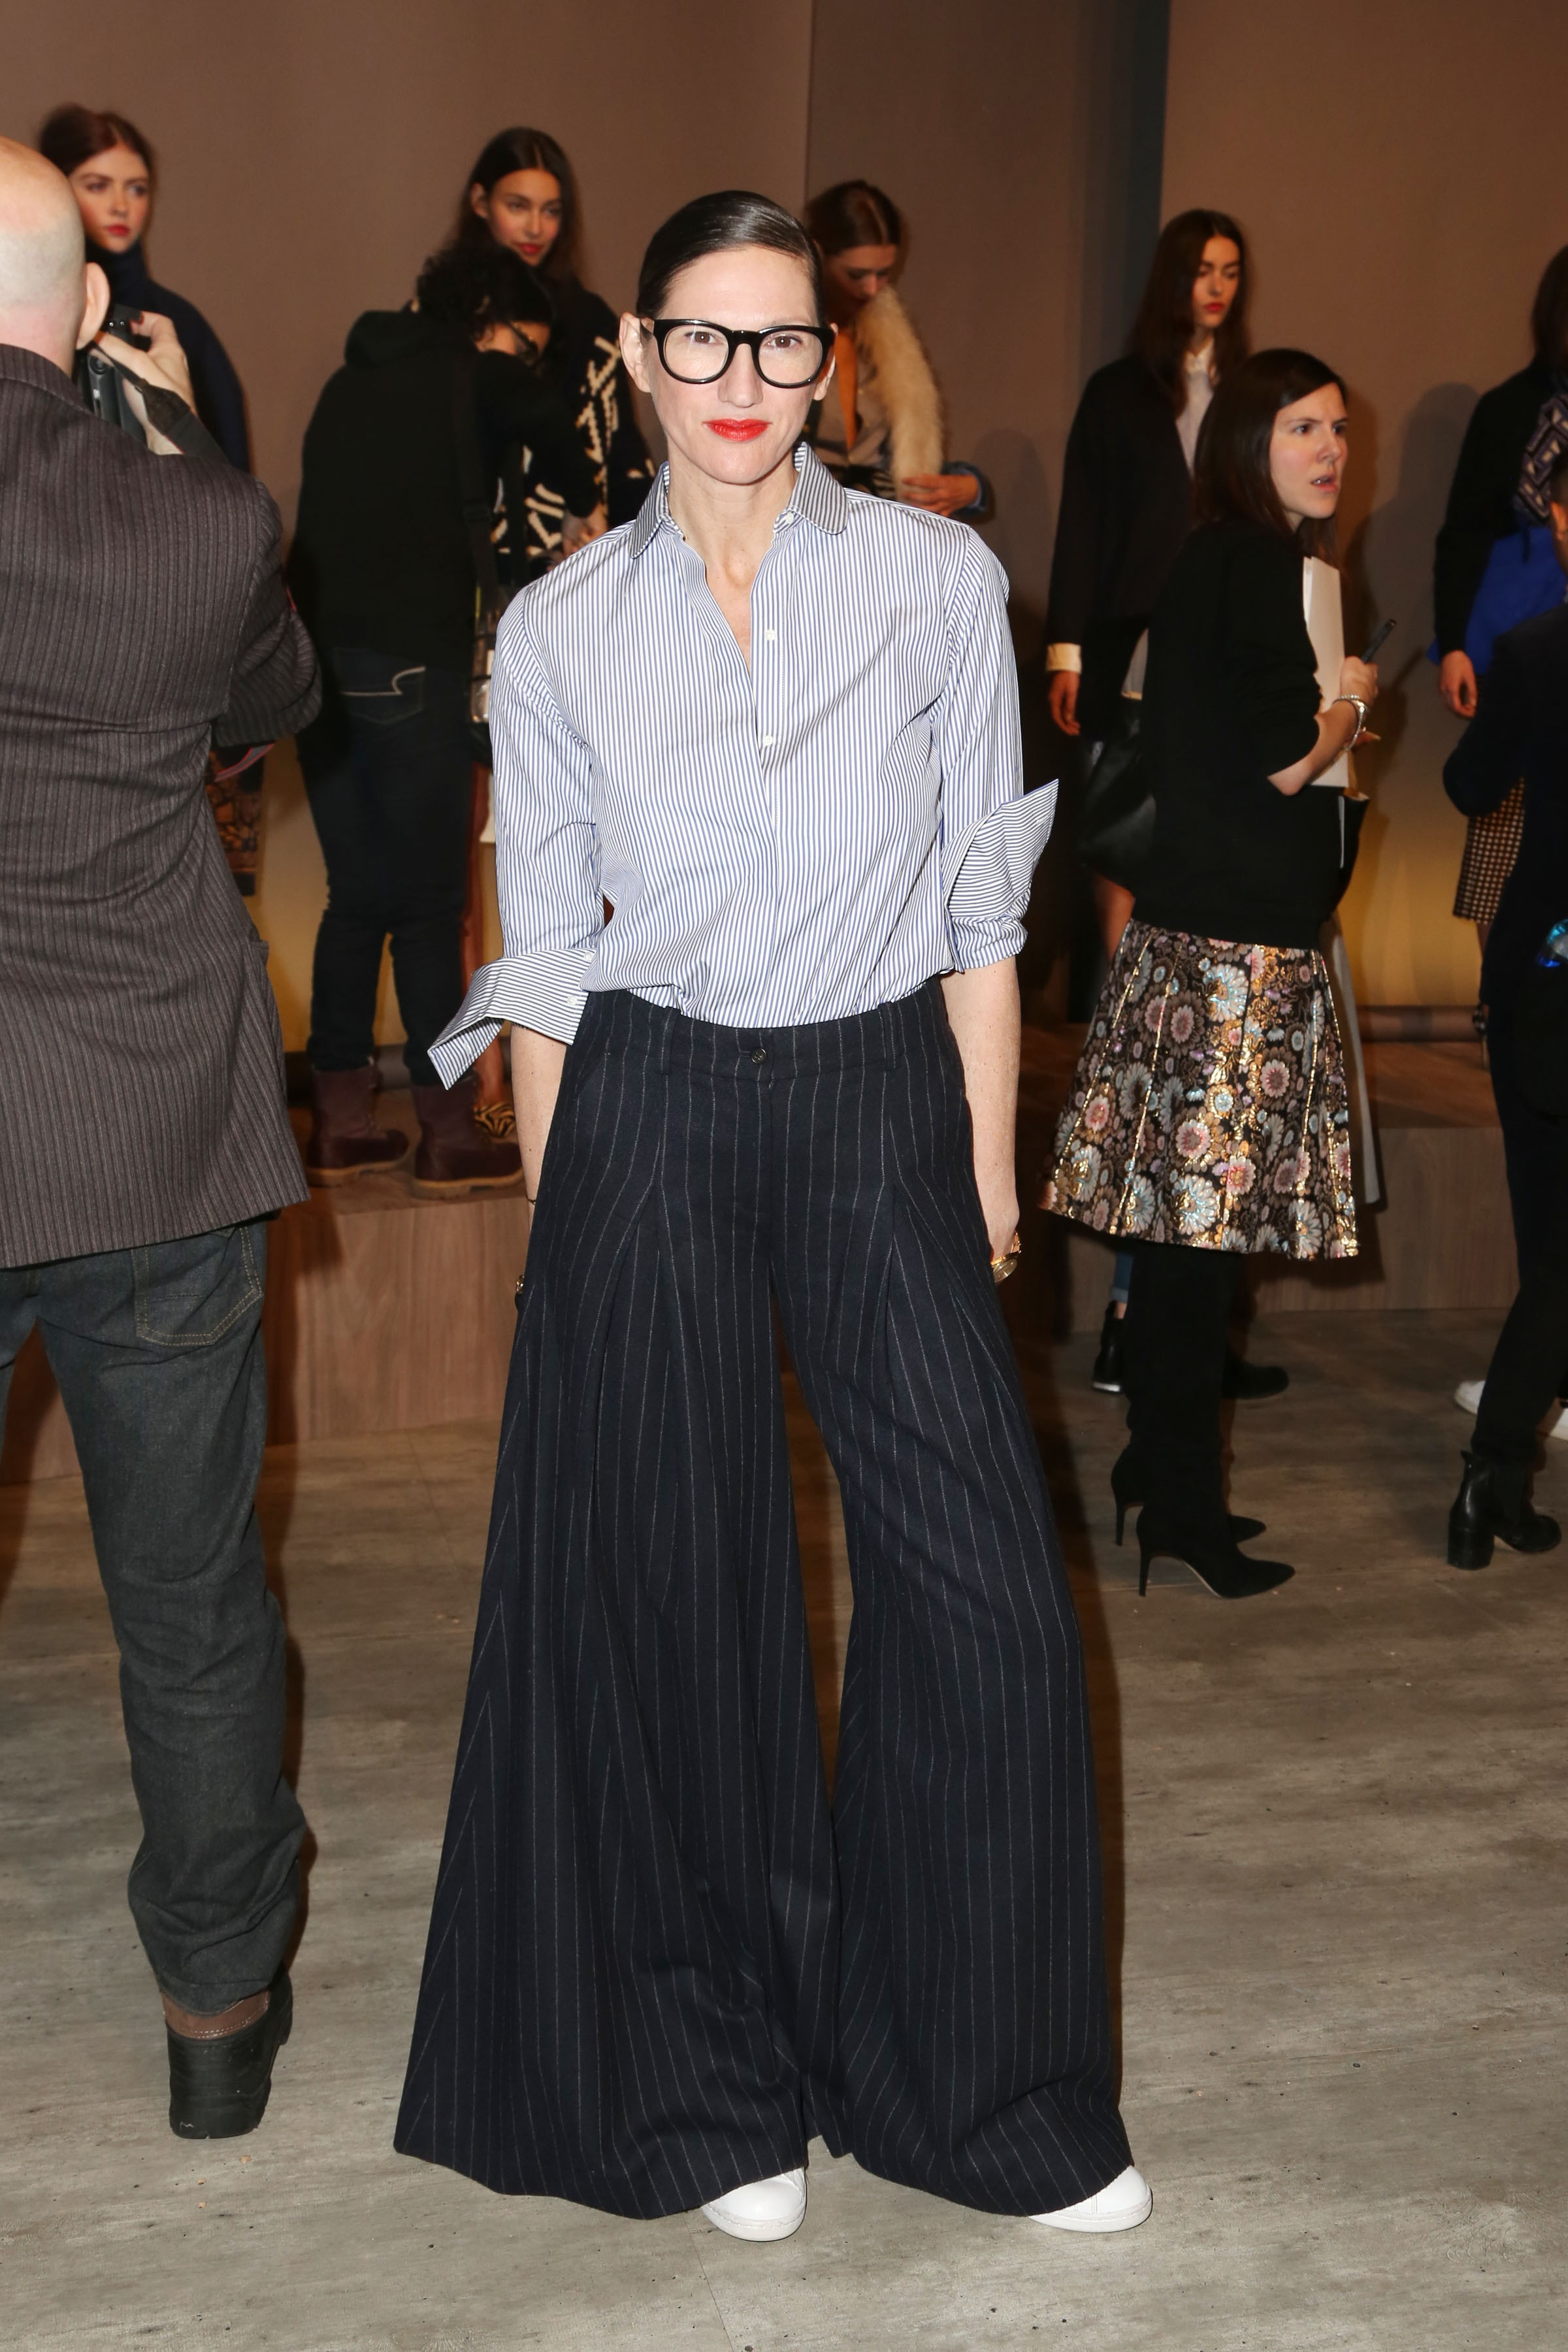 Jenna Lyons at J. Crew's fall and winter 2015 presentation in February (Photo: Patrick McMullan).